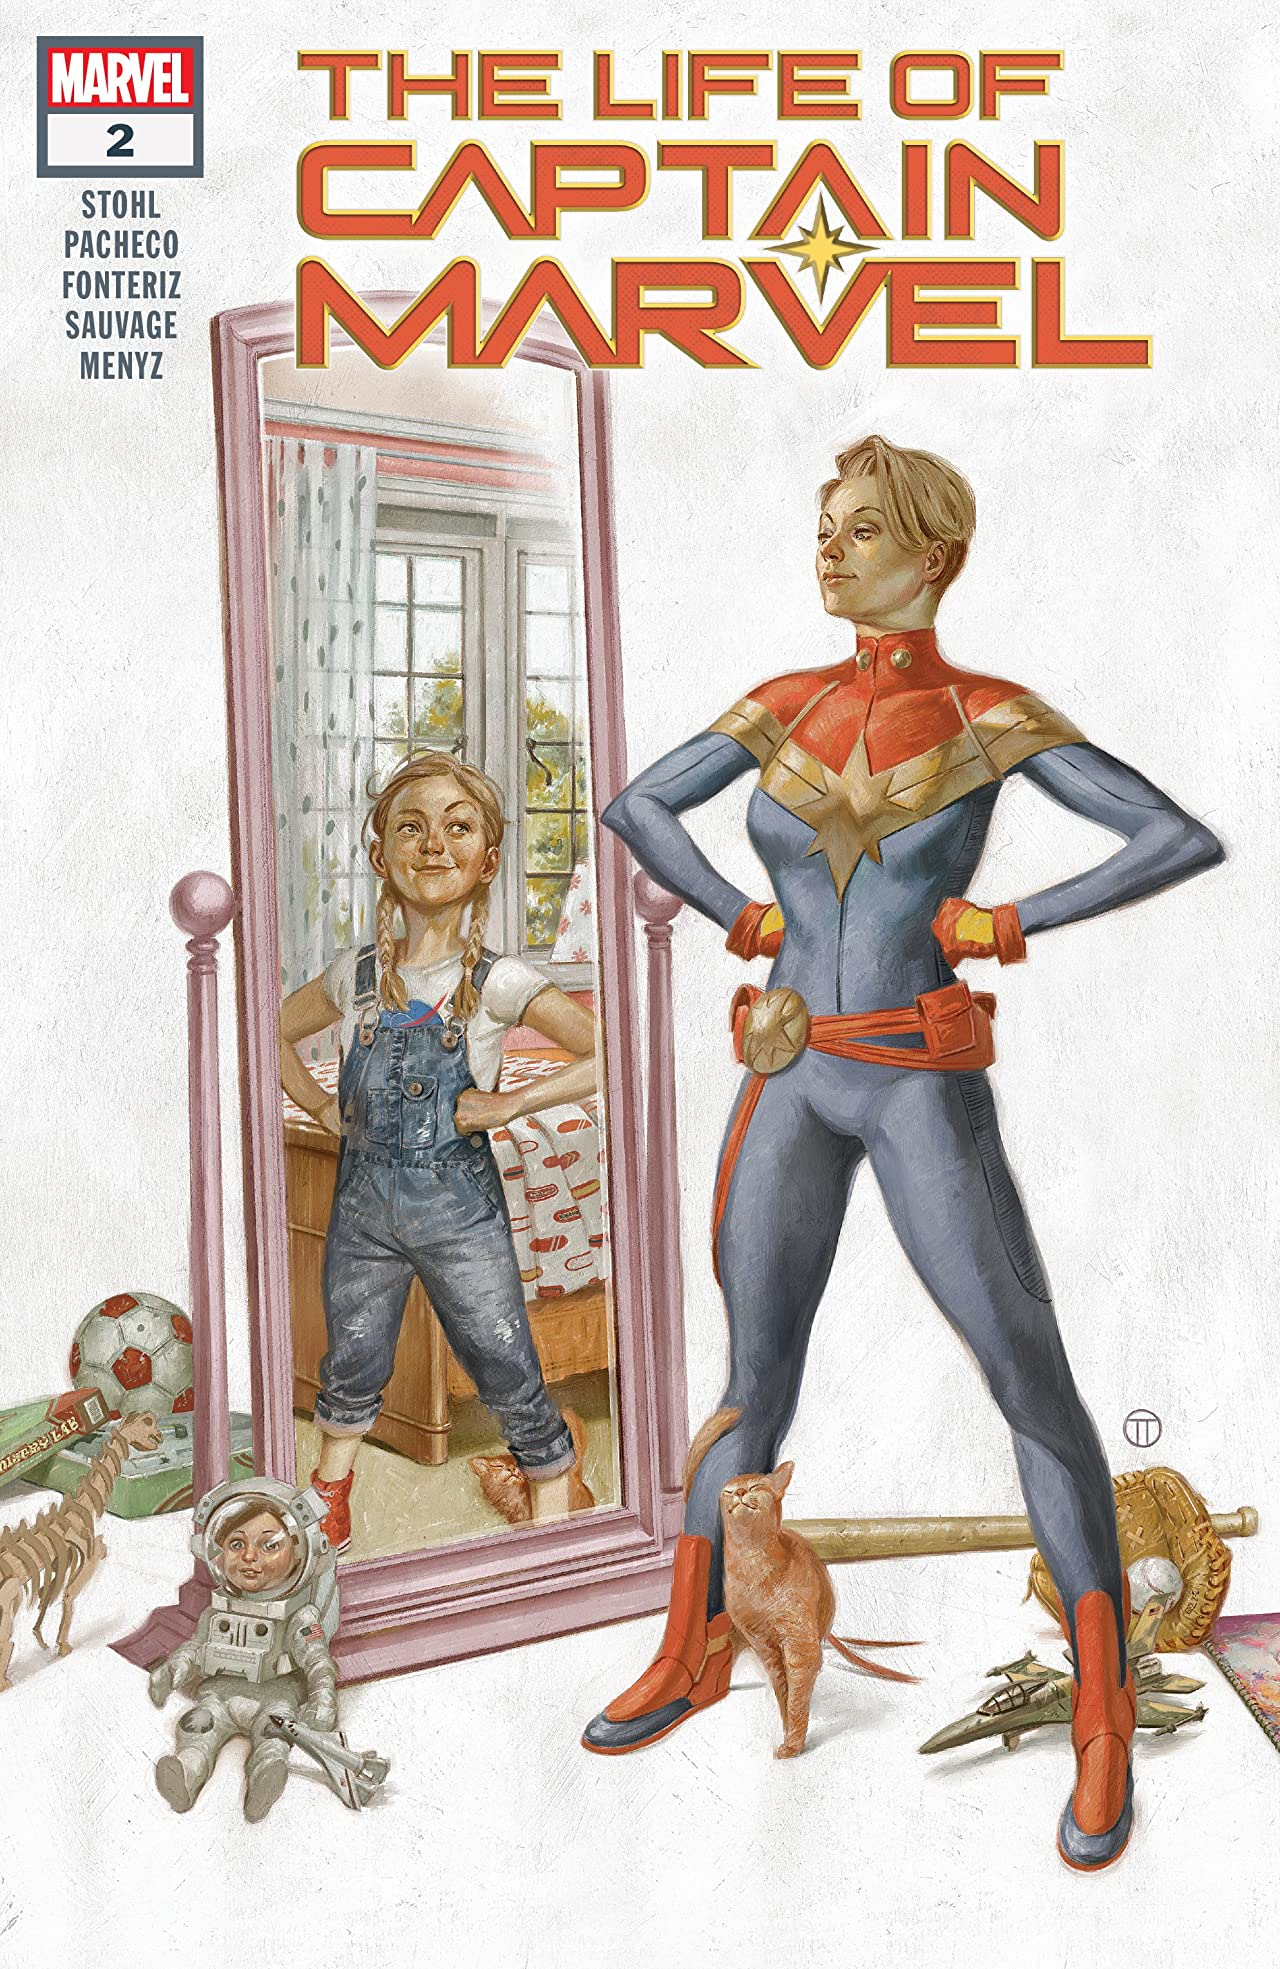 The Life Of Captain Marvel (2018) #2 (of 5)